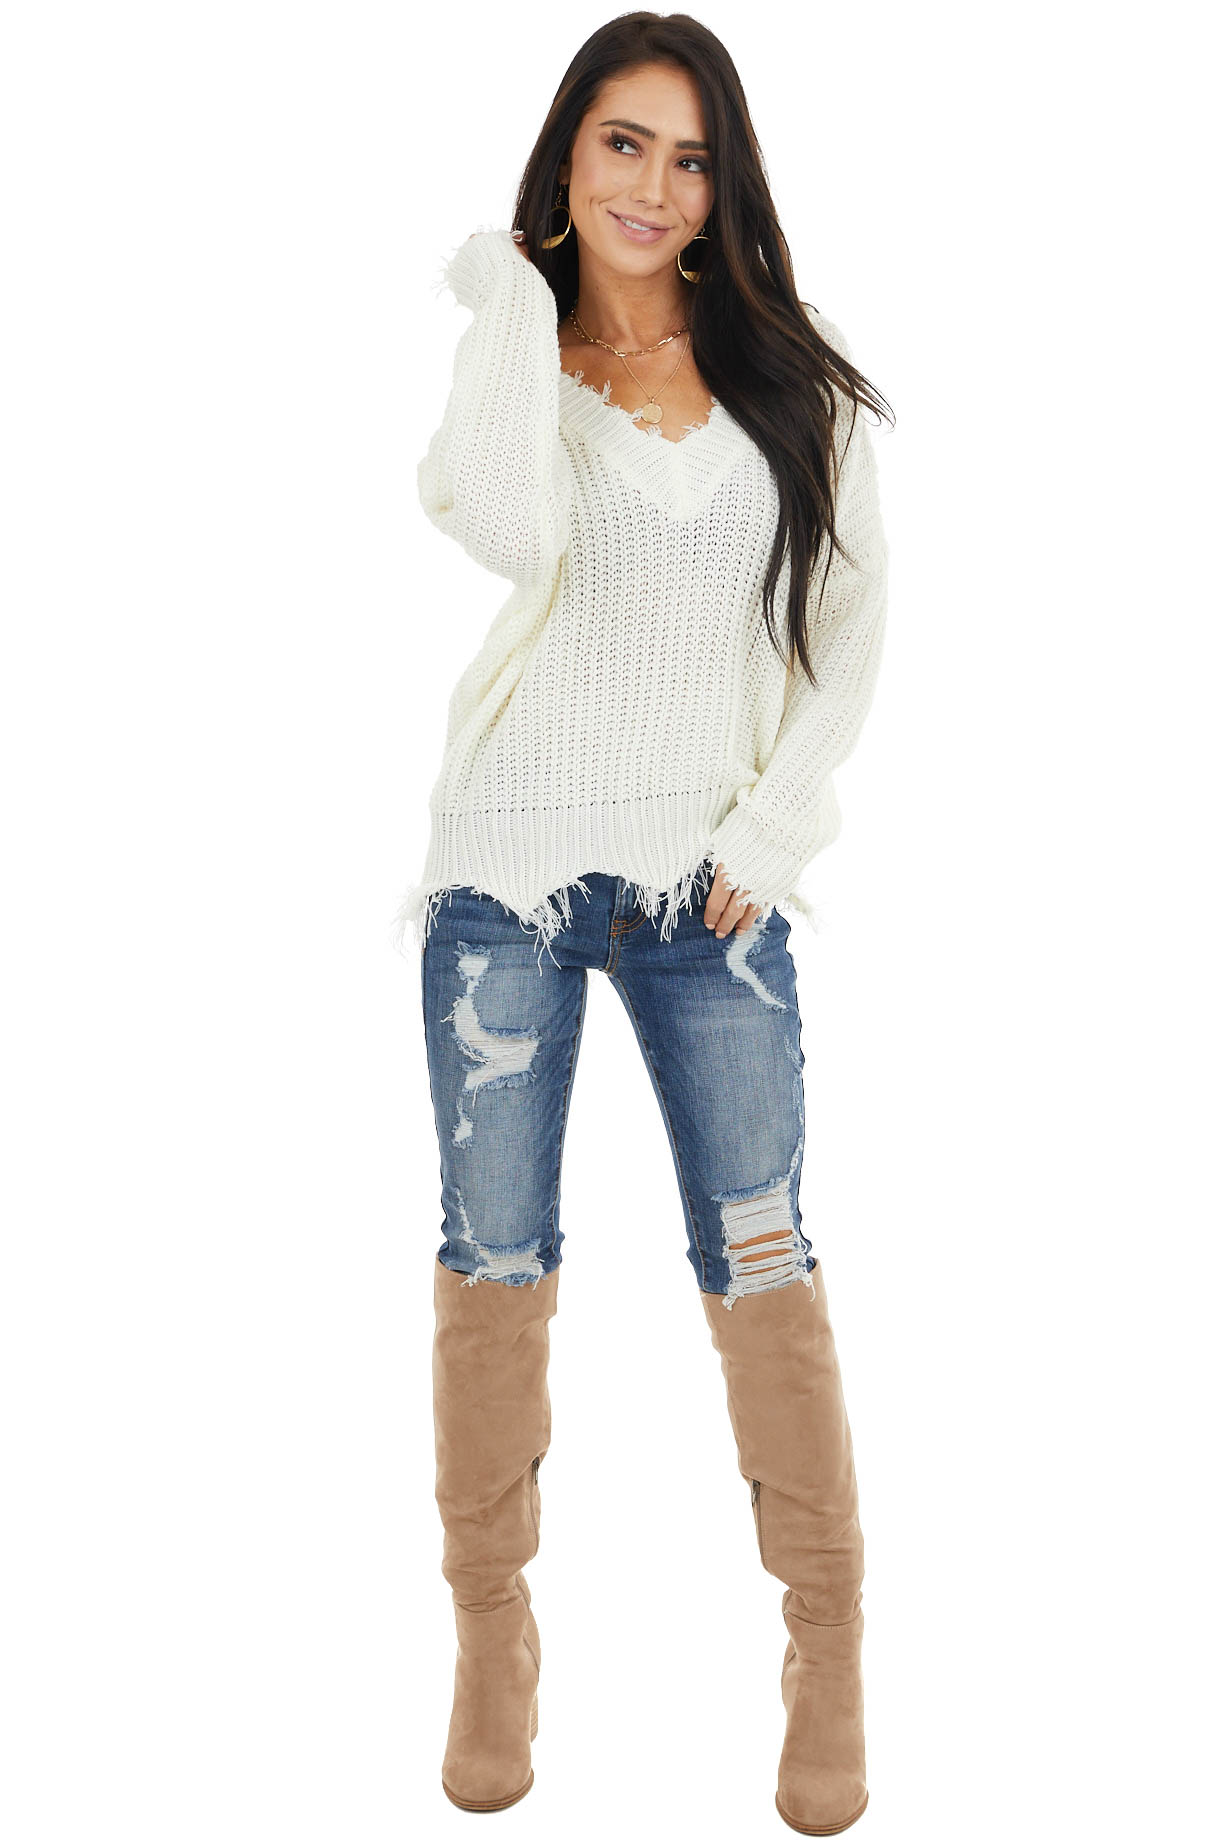 Off White V Neck Knit Sweater with Distressed Details